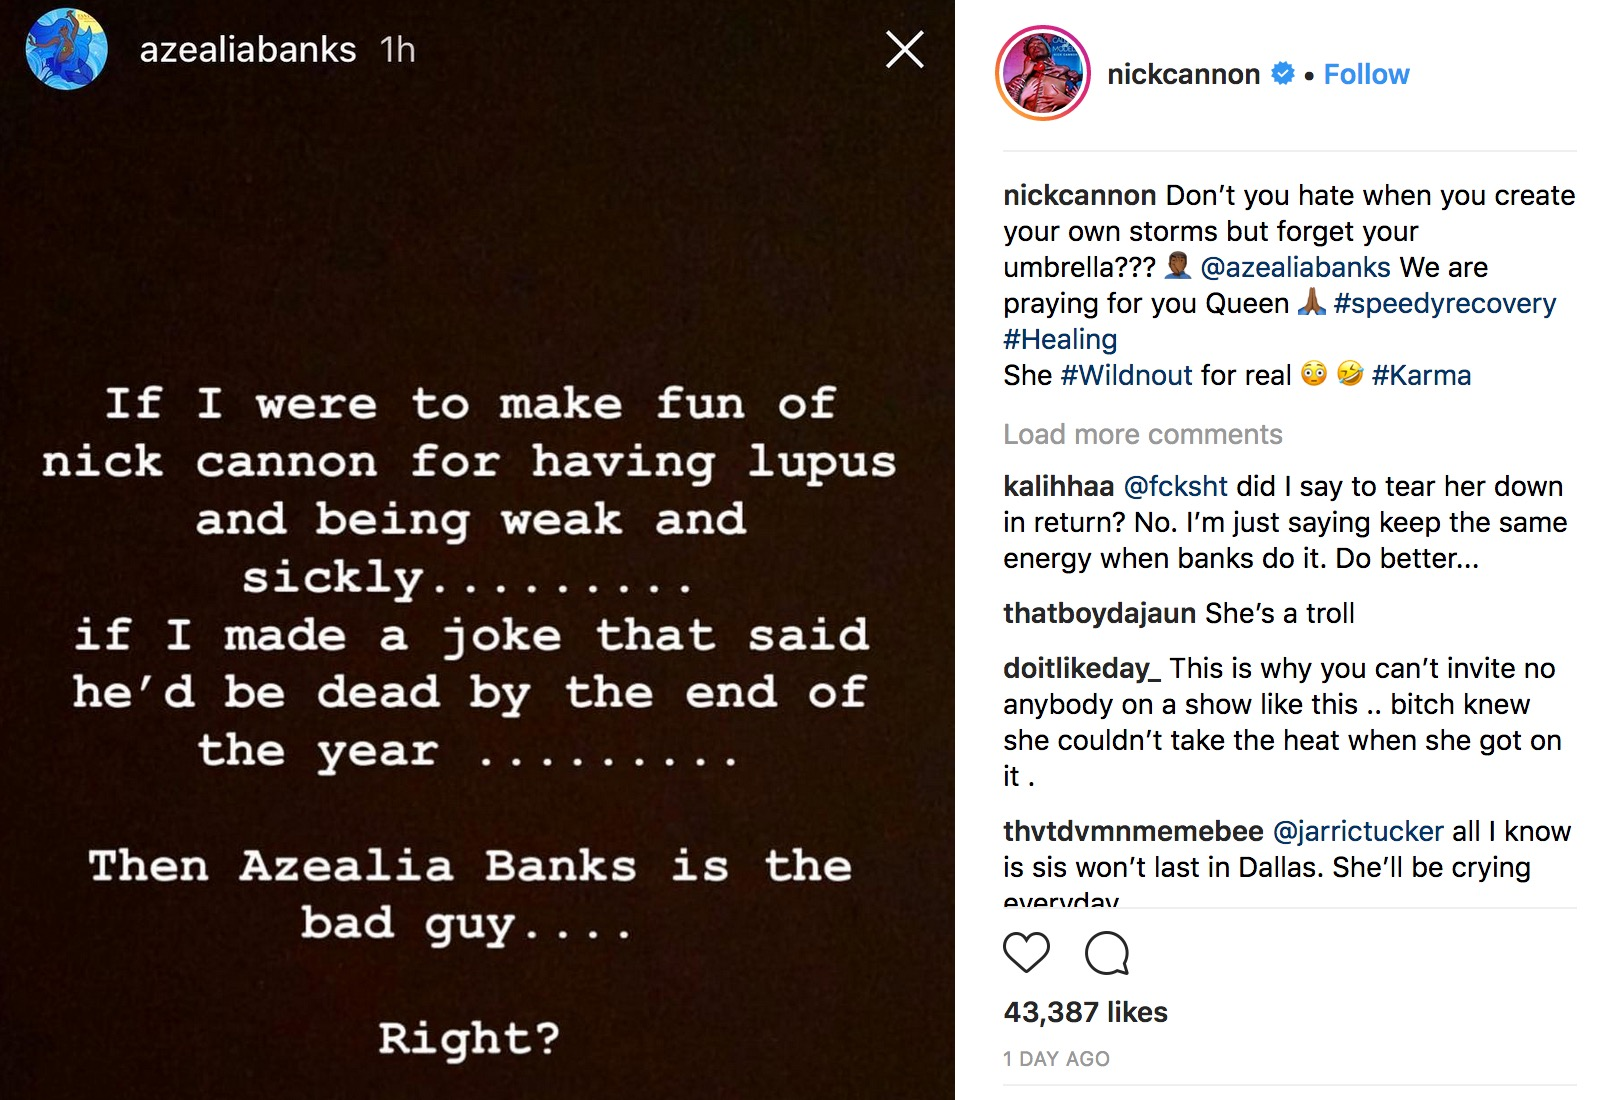 Azealia Banks Cancels New Album Amid Nick Cannon Wild N Out Feud Hiphollywood